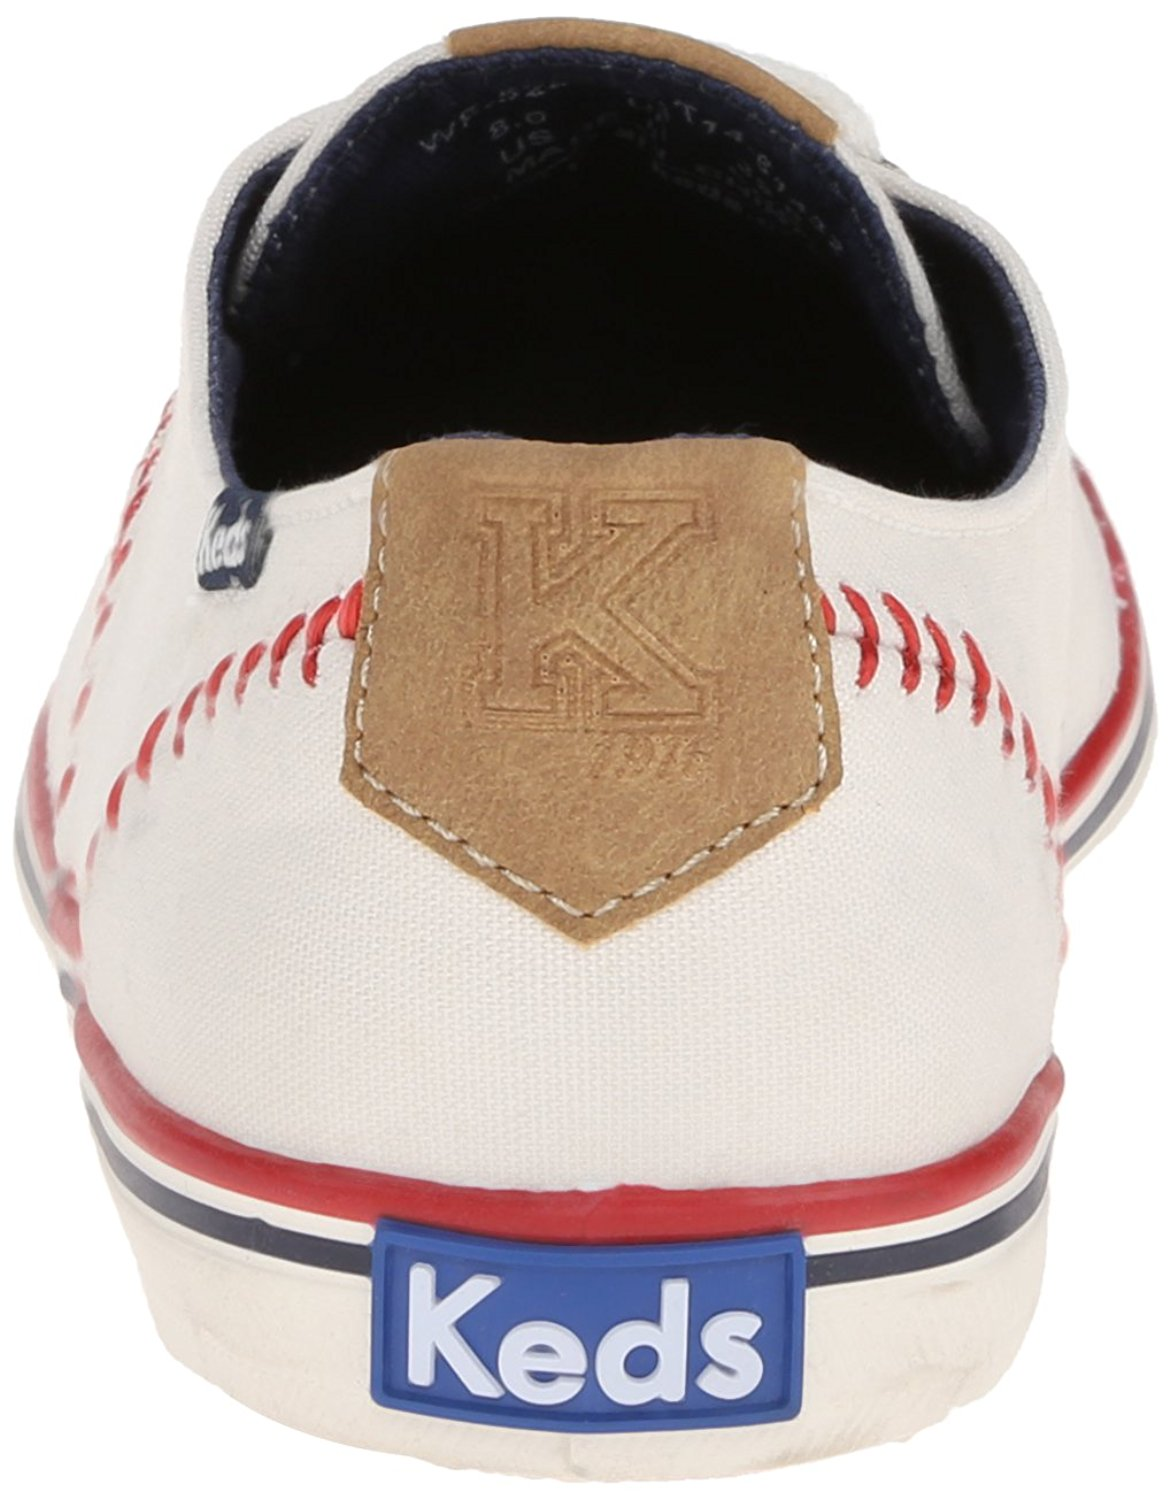 a6a37476c40bc Keds Womens Champion Pennant Fabric Low Top Lace Up Fashion Sneakers ...